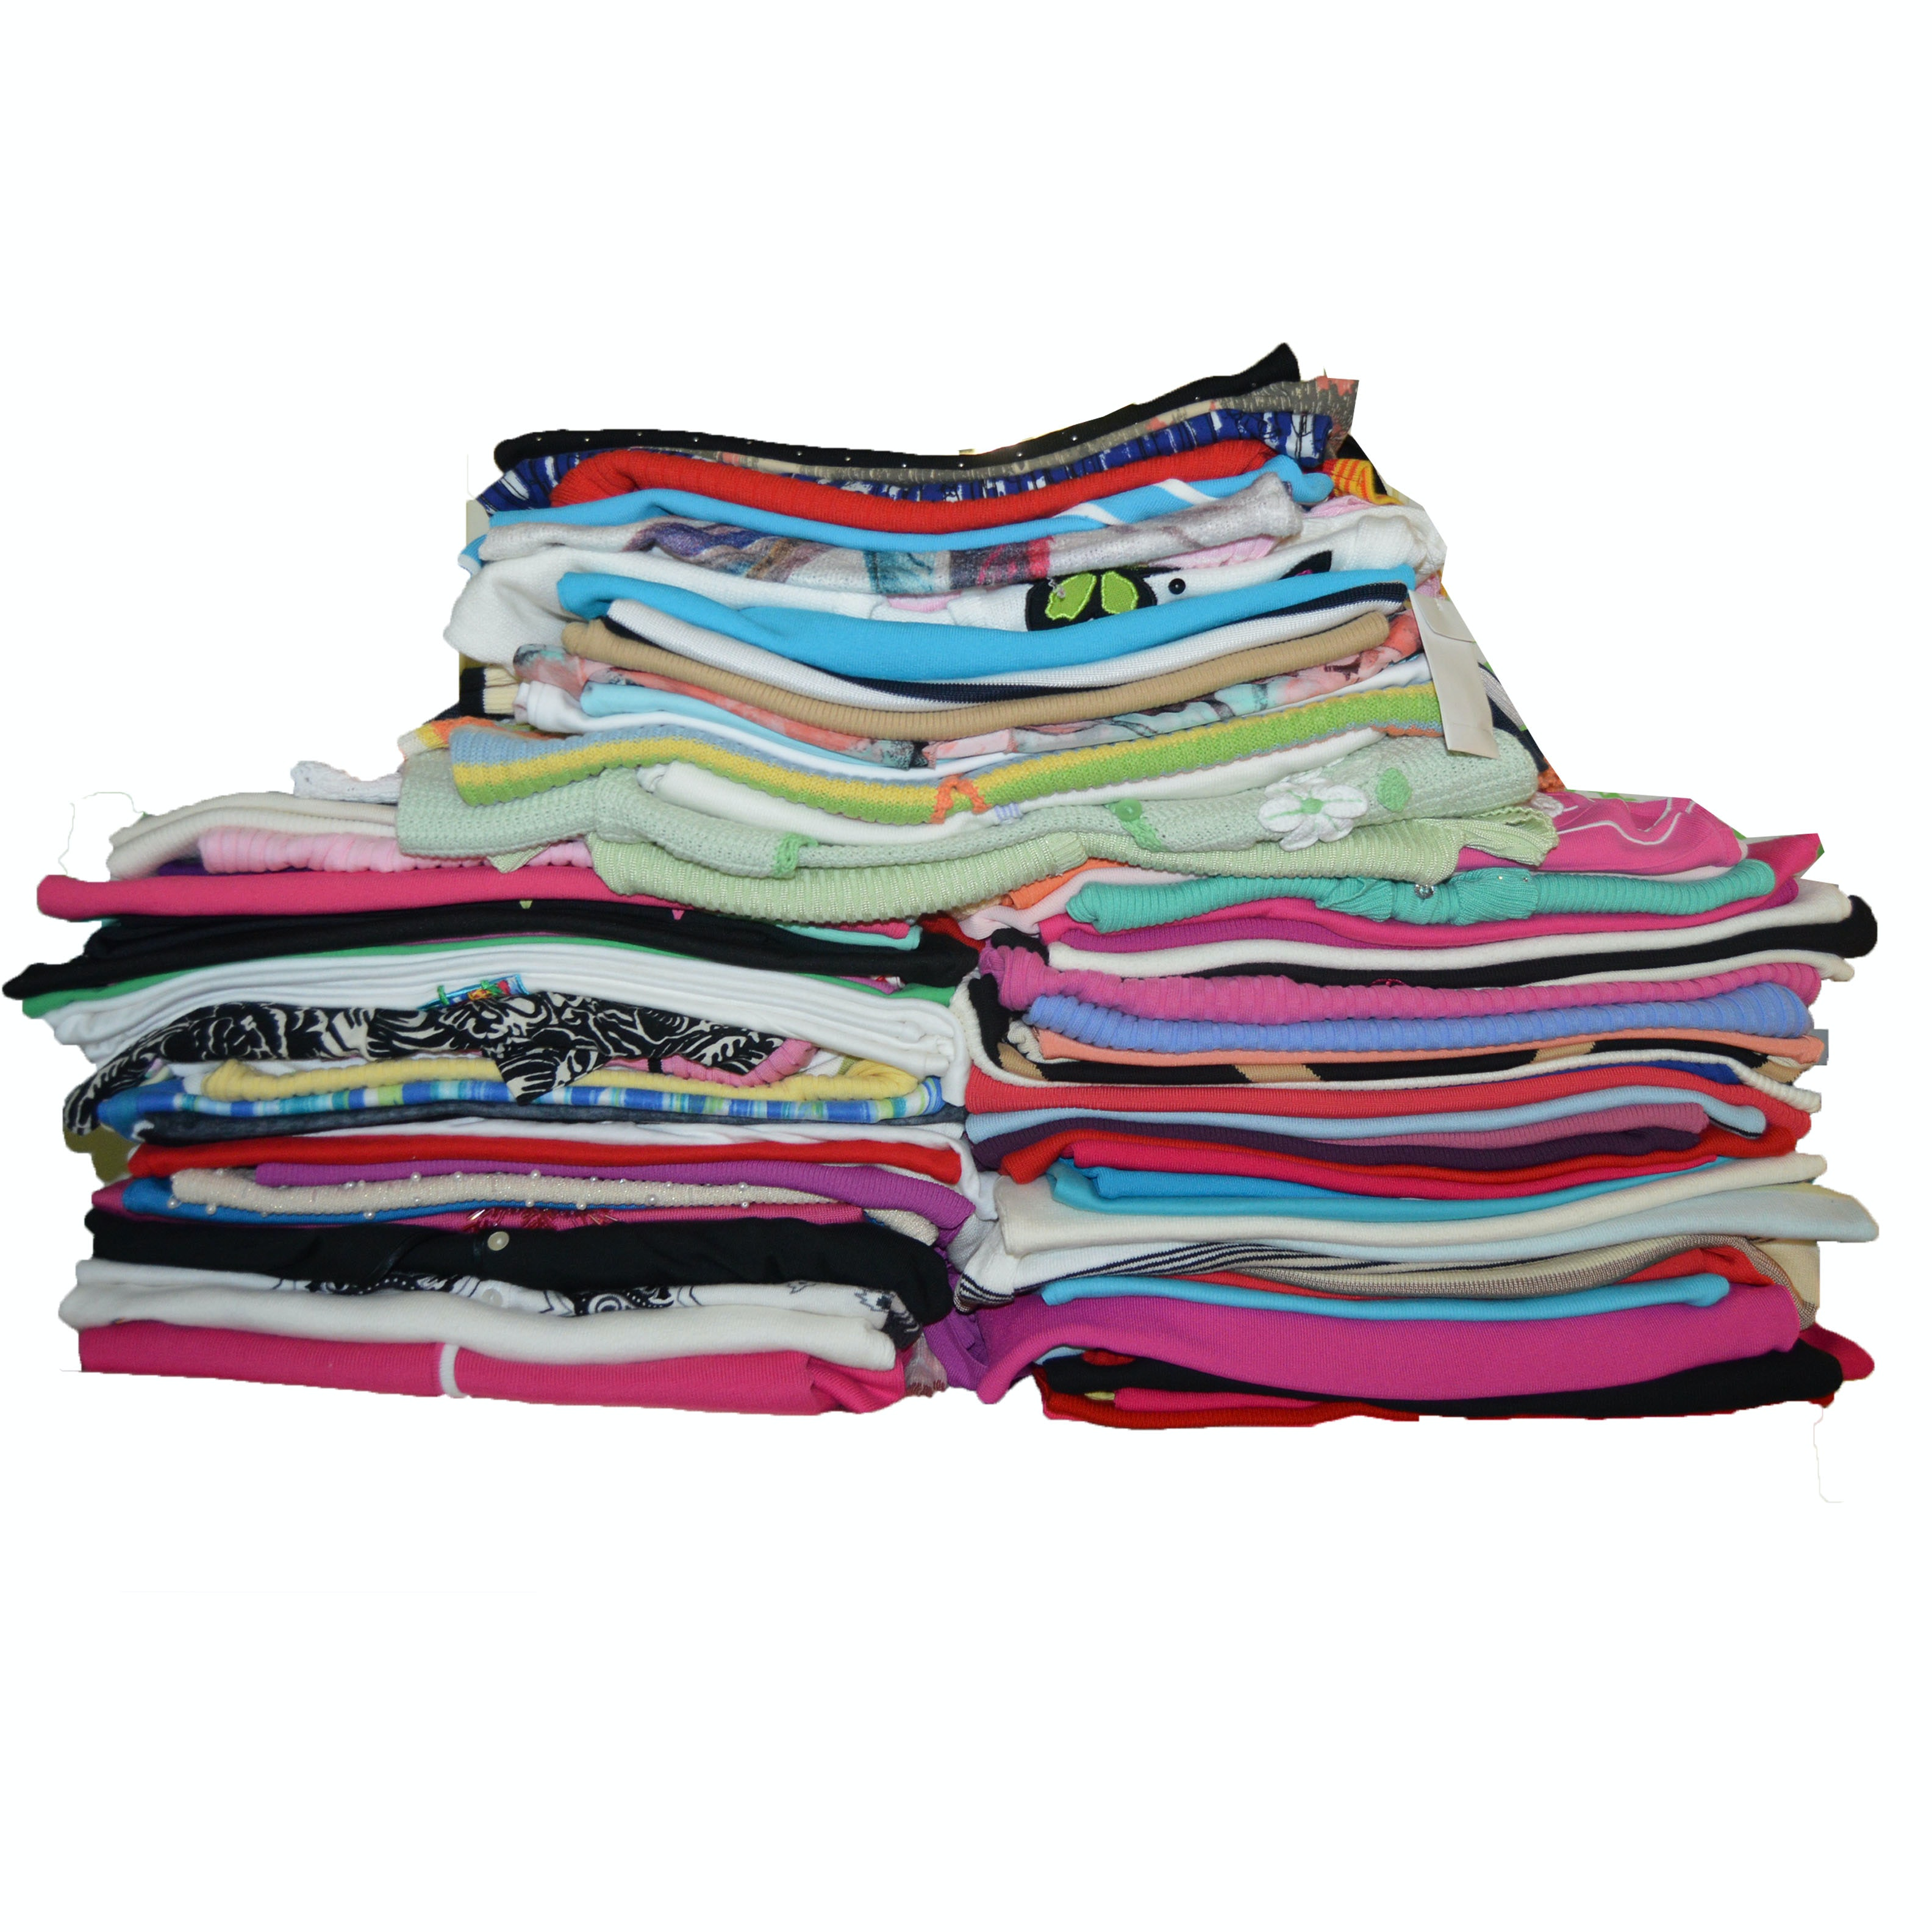 More Than Fifty Women's Short Sleeve  and Sleeveless Knit Tops